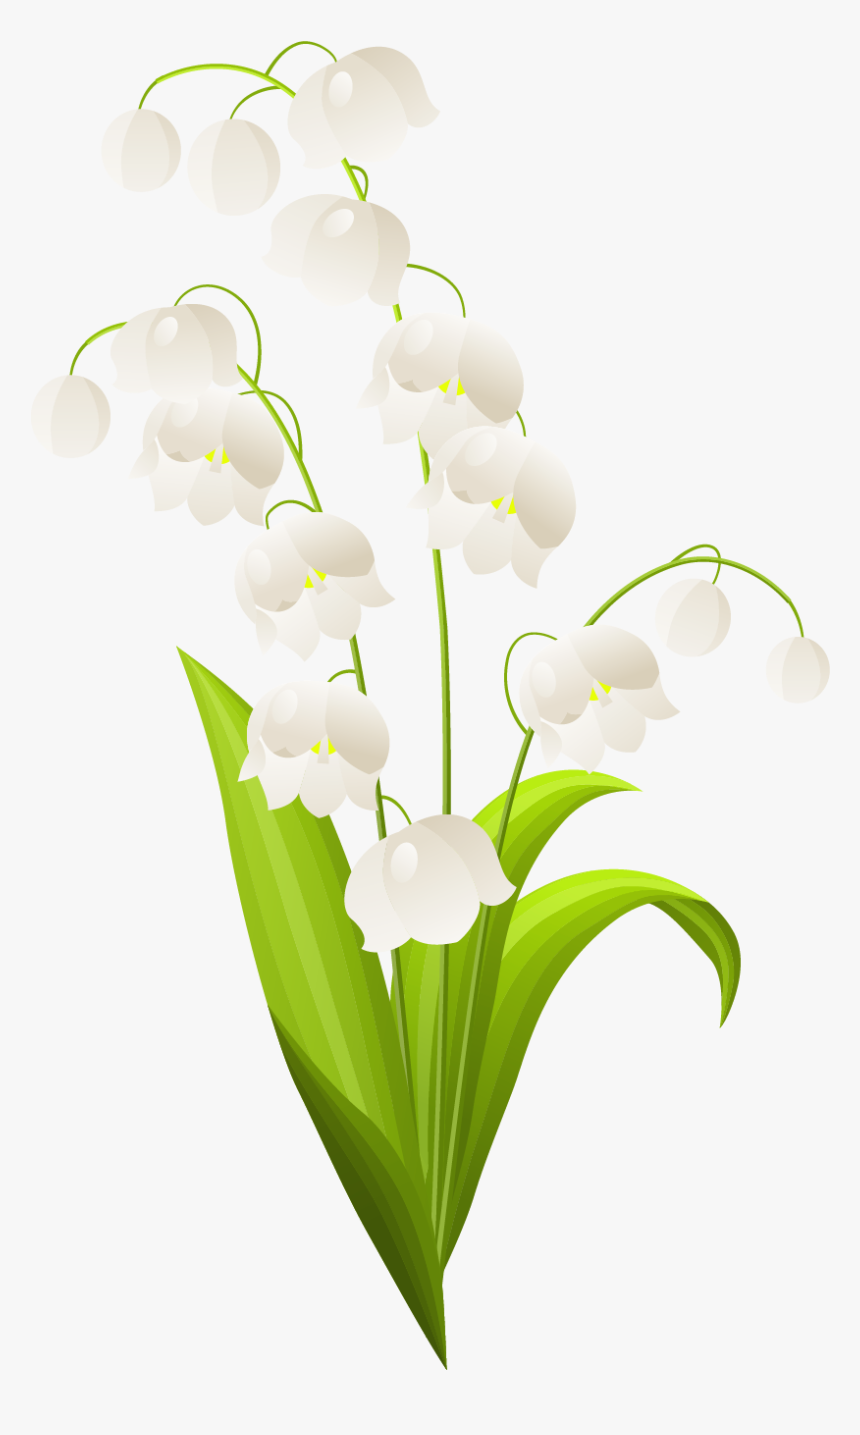 Transparent Easter Border Png - Lily Of The Valley Stem, Png Download, Free Download